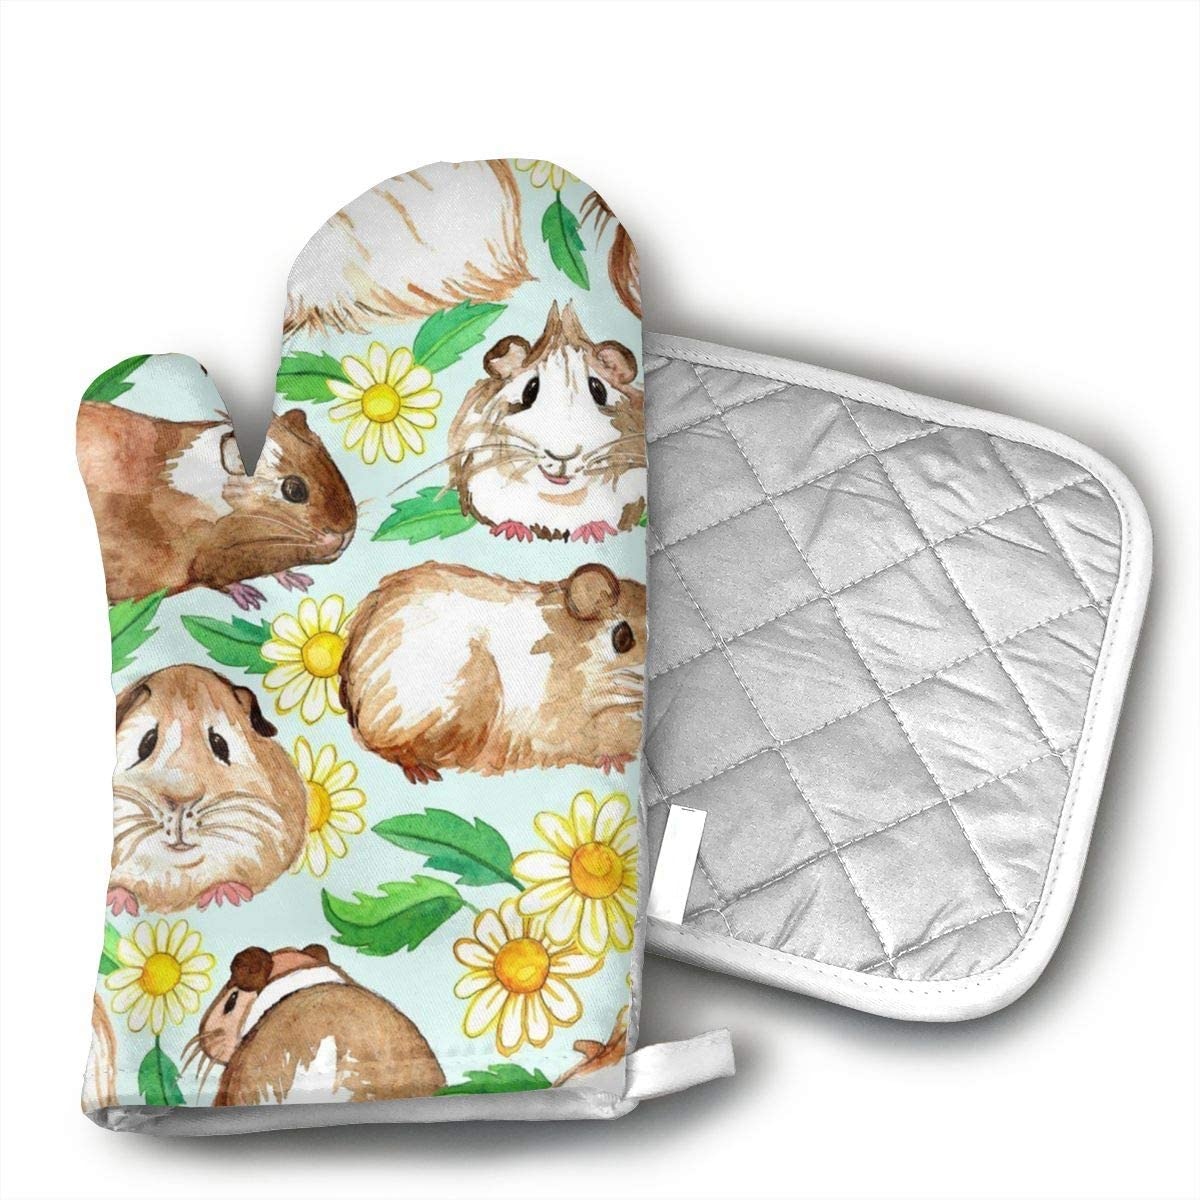 Guinea Pigs and Daisies Oven Mitts and Potholders (2-Piece Sets) - Kitchen Set with Cotton Heat Resistant,Oven Gloves for BBQ Cooking Baking Grilling